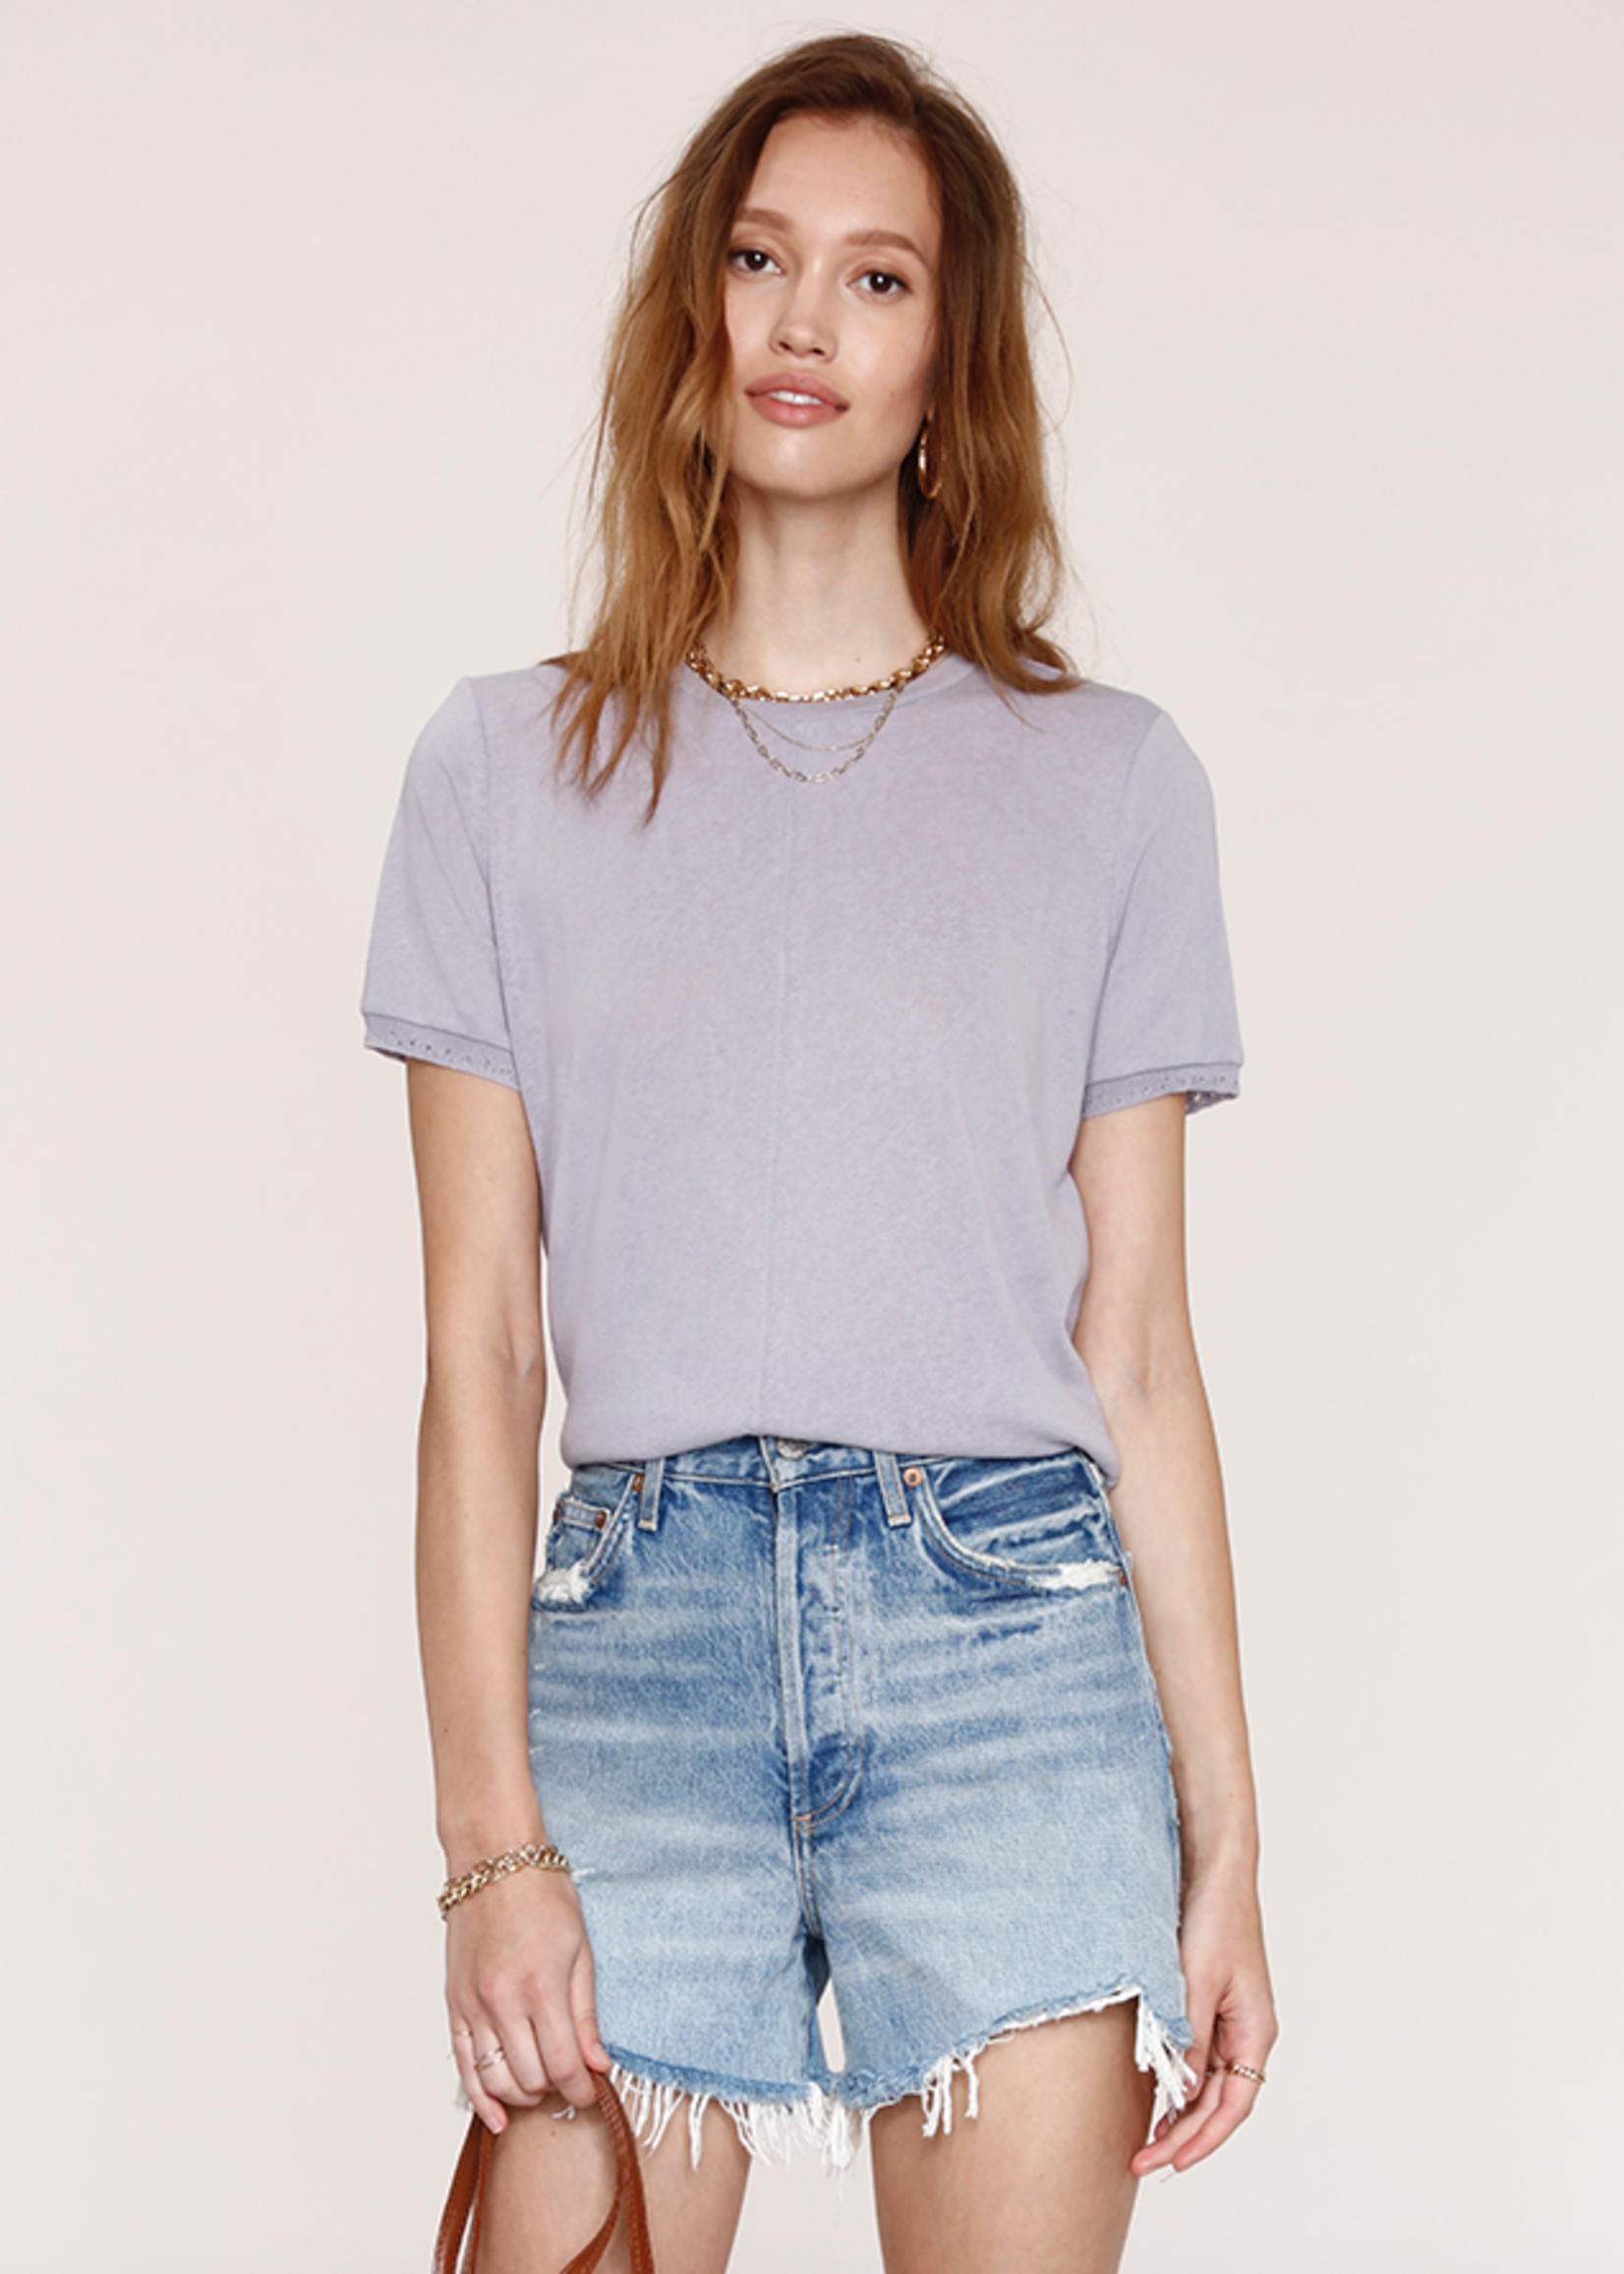 Elitaire Boutique Kaia Tee in Haze